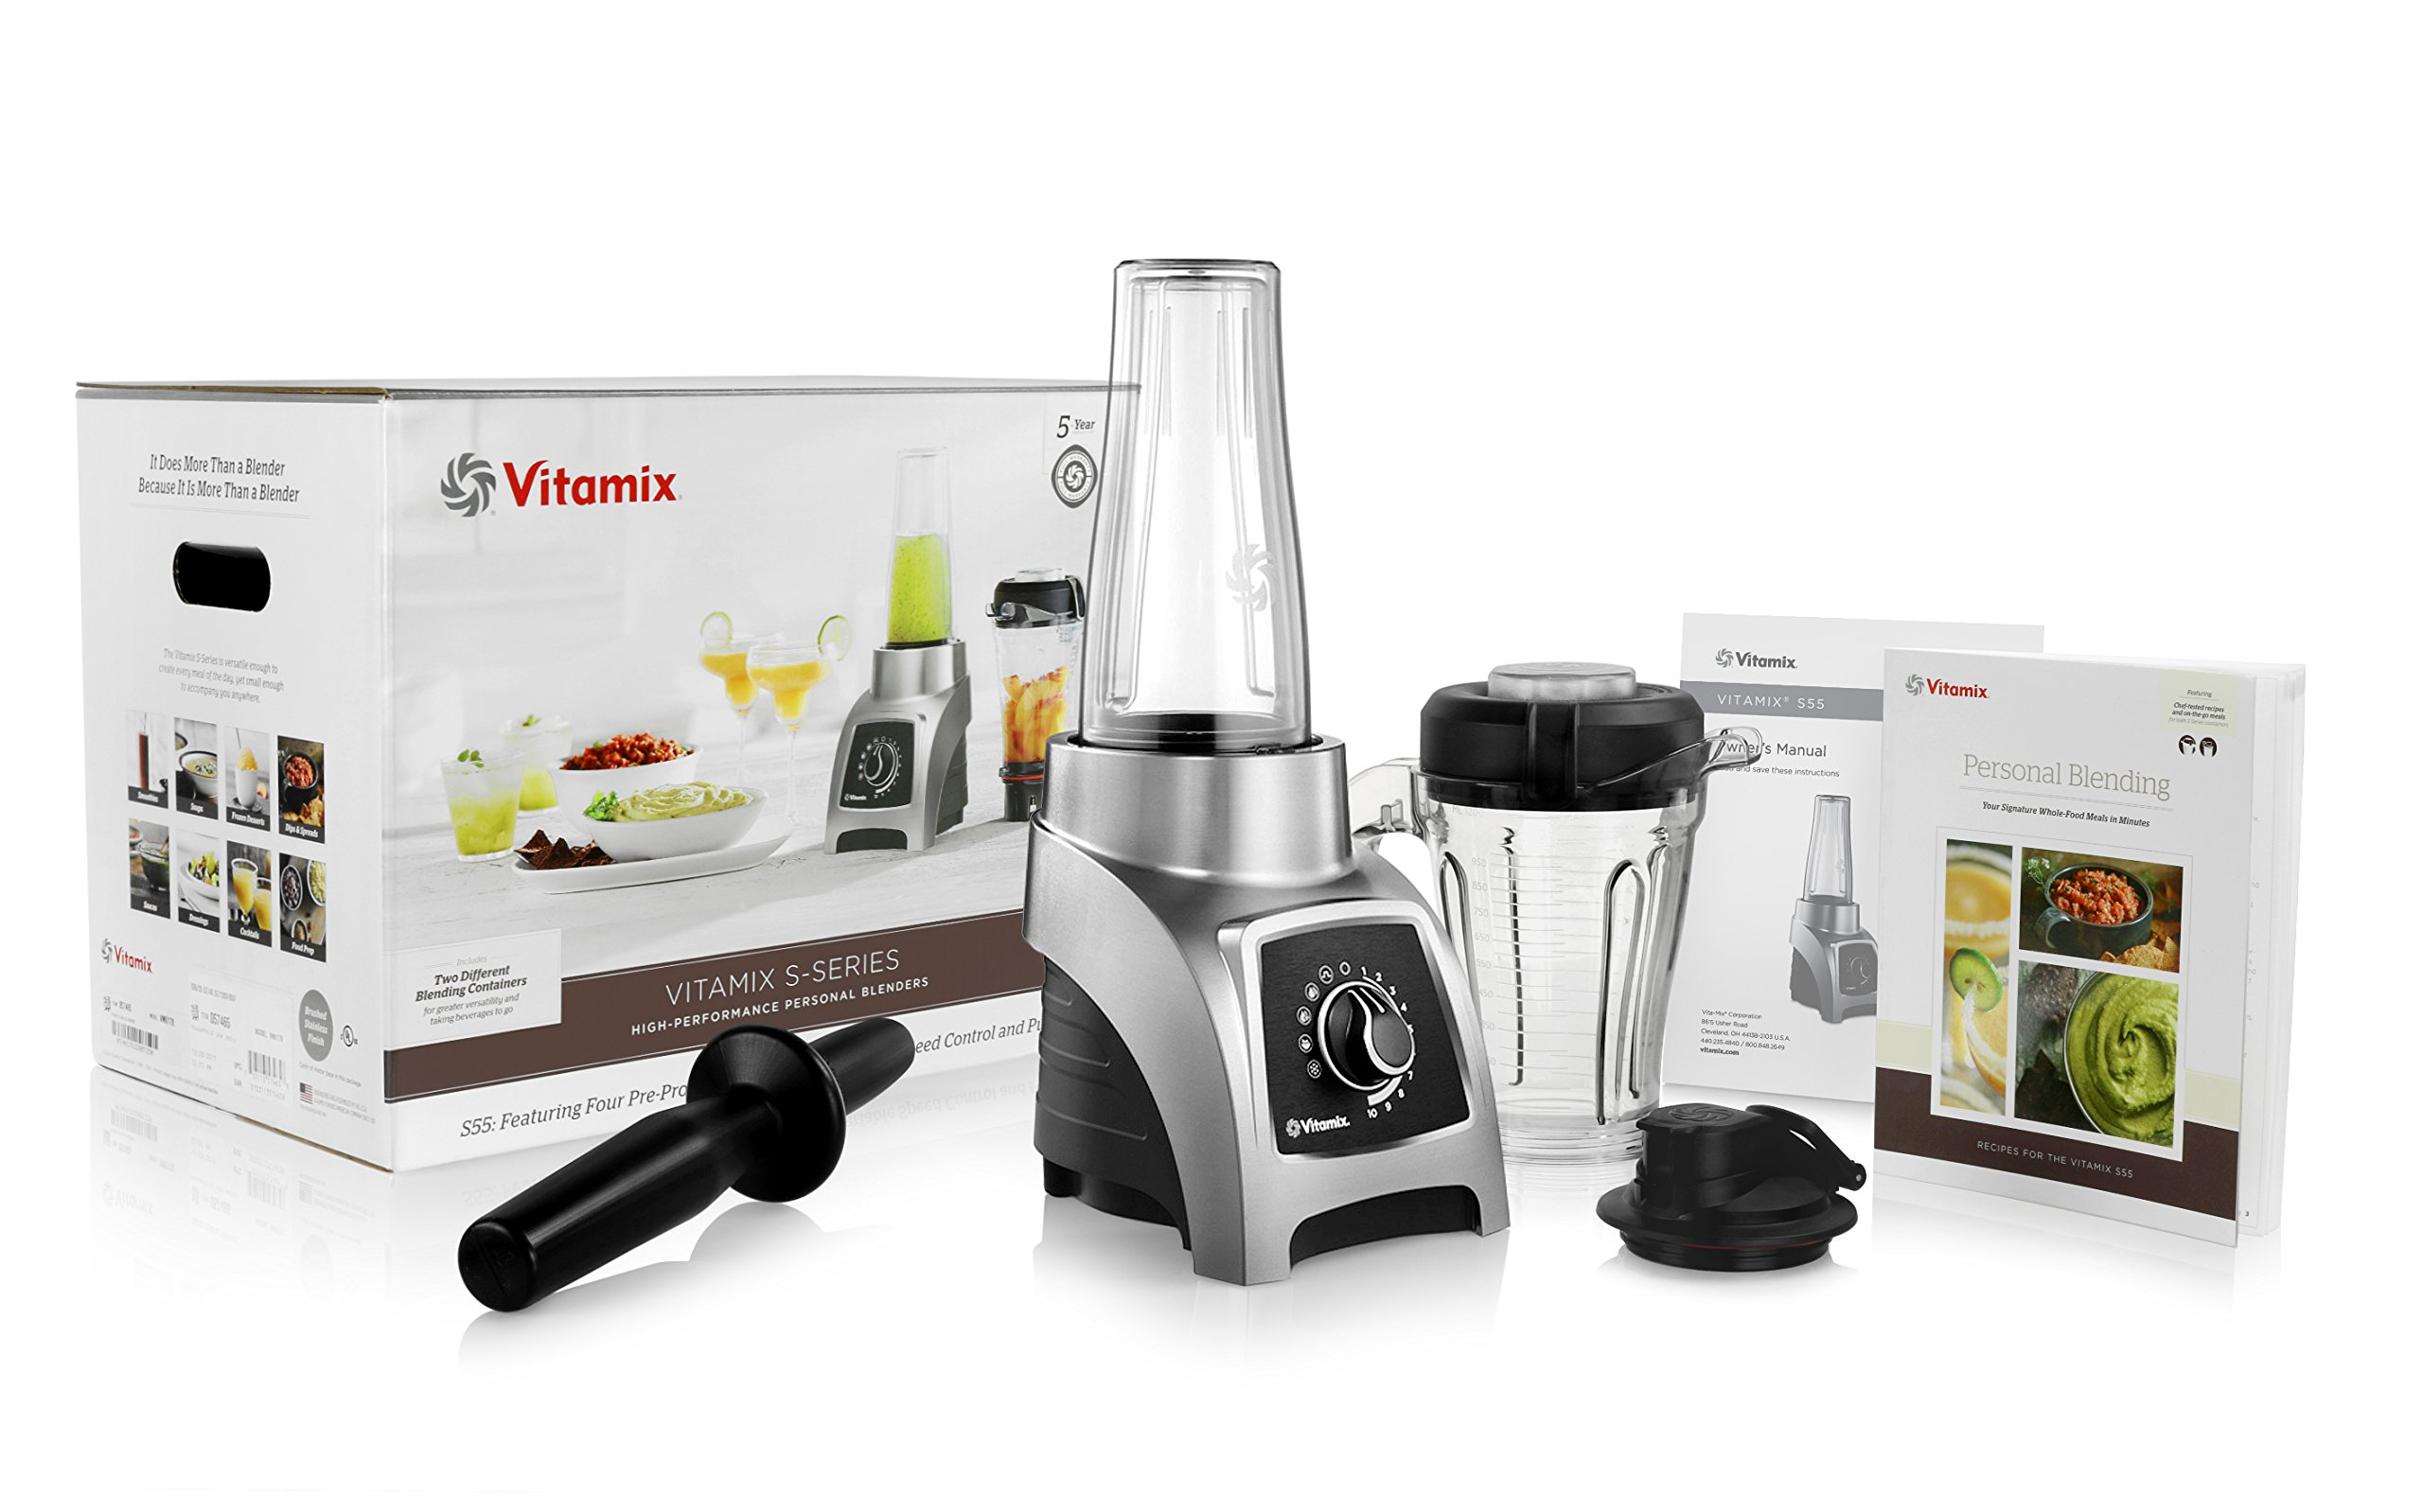 Vitamix S55 Personal Blender with 40-Ounce Container + 20-Ounce Travel Container + S-Series Blade Base + Personal Blending Recipe Cookbook + Owners Manual + Low-Profile Tamper